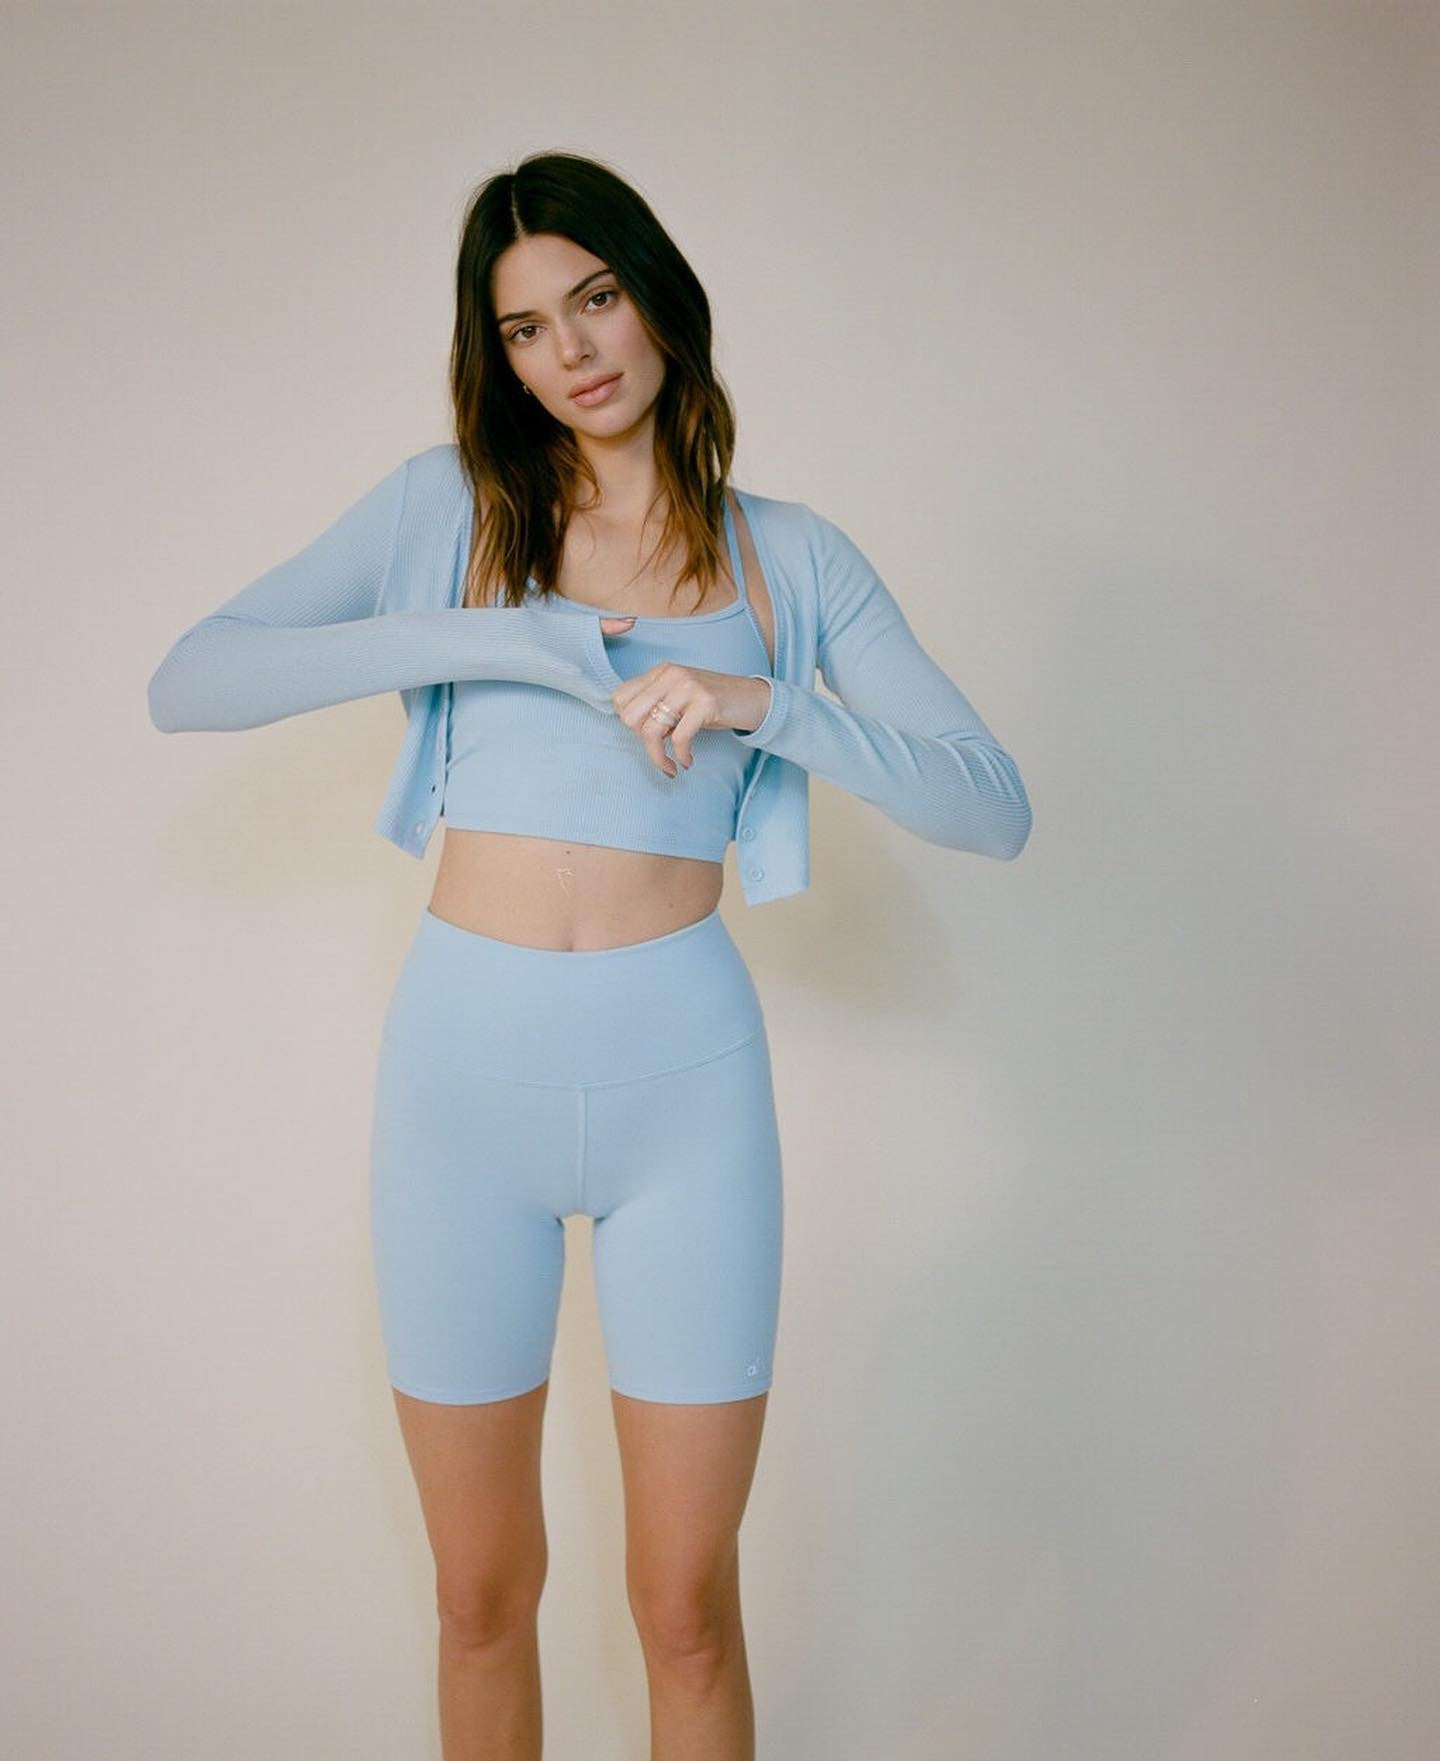 @kendalljenner wearing a head-to-toe Blue Skies outfit with High-Waist Biker Shorts, Alosoft Ribbed Calm Crop Tank, and the Ribbed Cropped Whisper Cardigan.